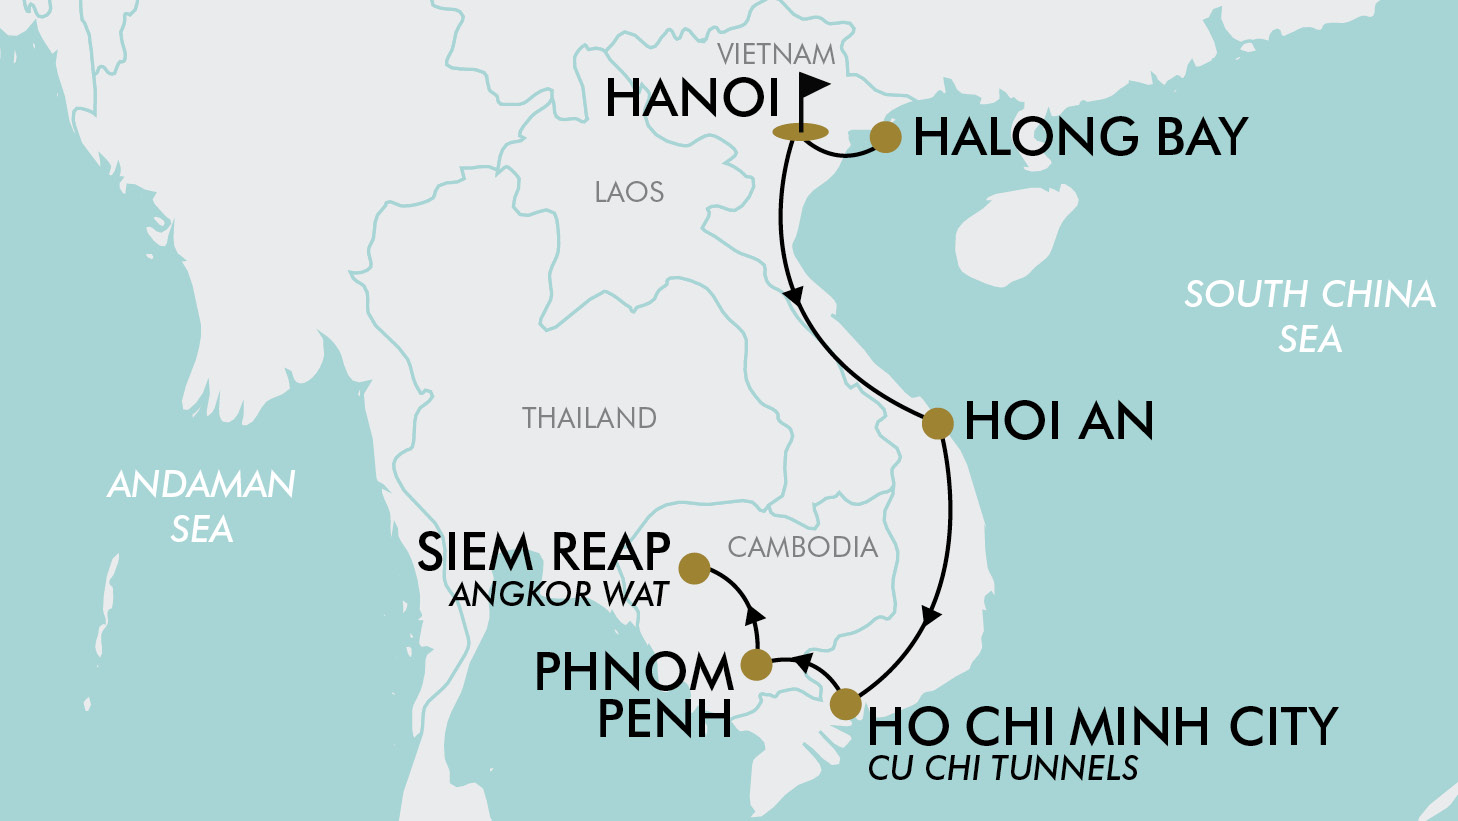 Vietnam And Cambodia Are Two Of South East Asias Most Fascinating Destinations From Hanoi And Halong Bay To Phnom Penh And Angkor Wat The Diverse History